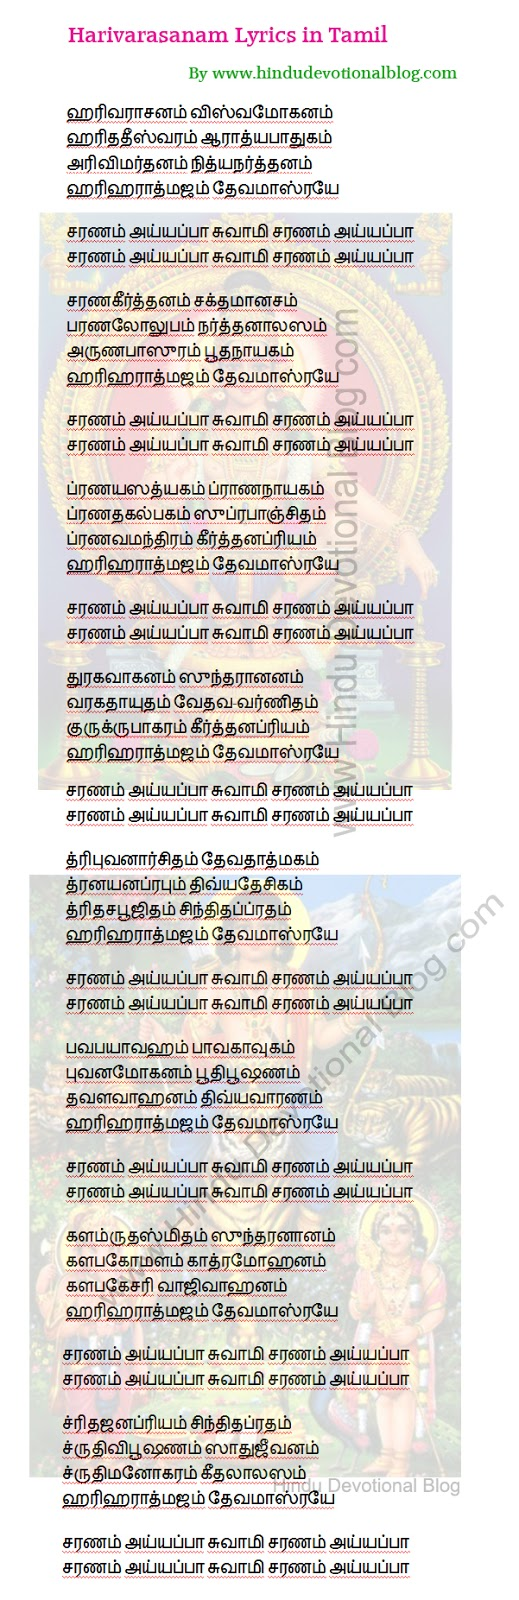 Lalitha sahasranamam lyrics in tamil